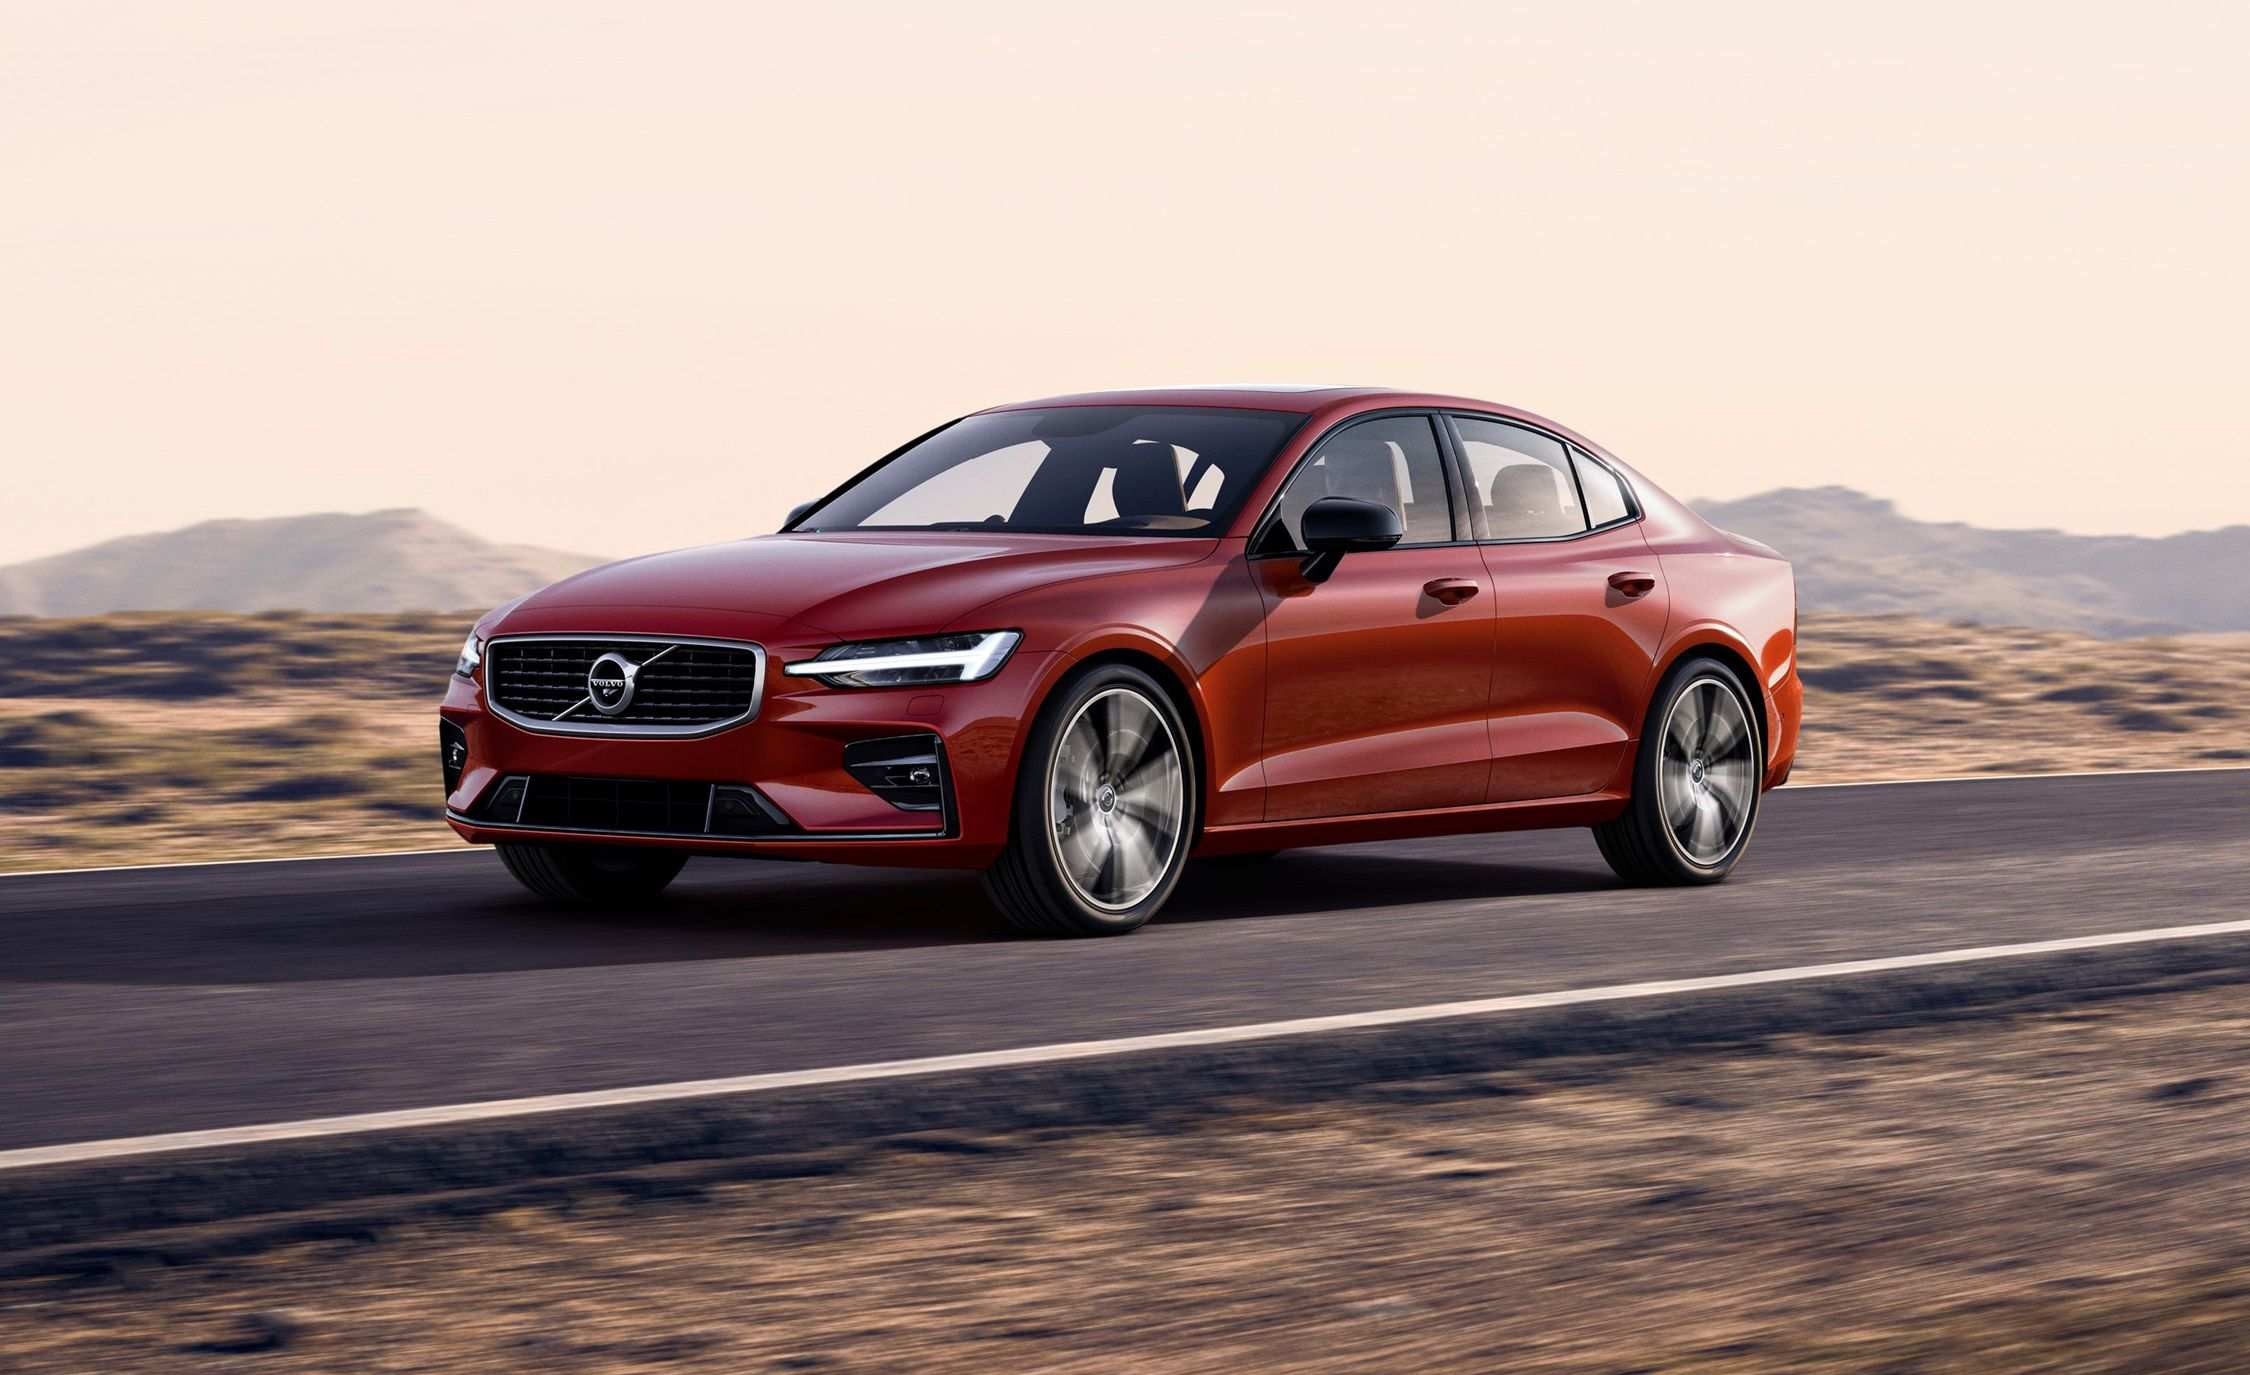 87 Gallery of Volvo And 2019 Picture with Volvo And 2019